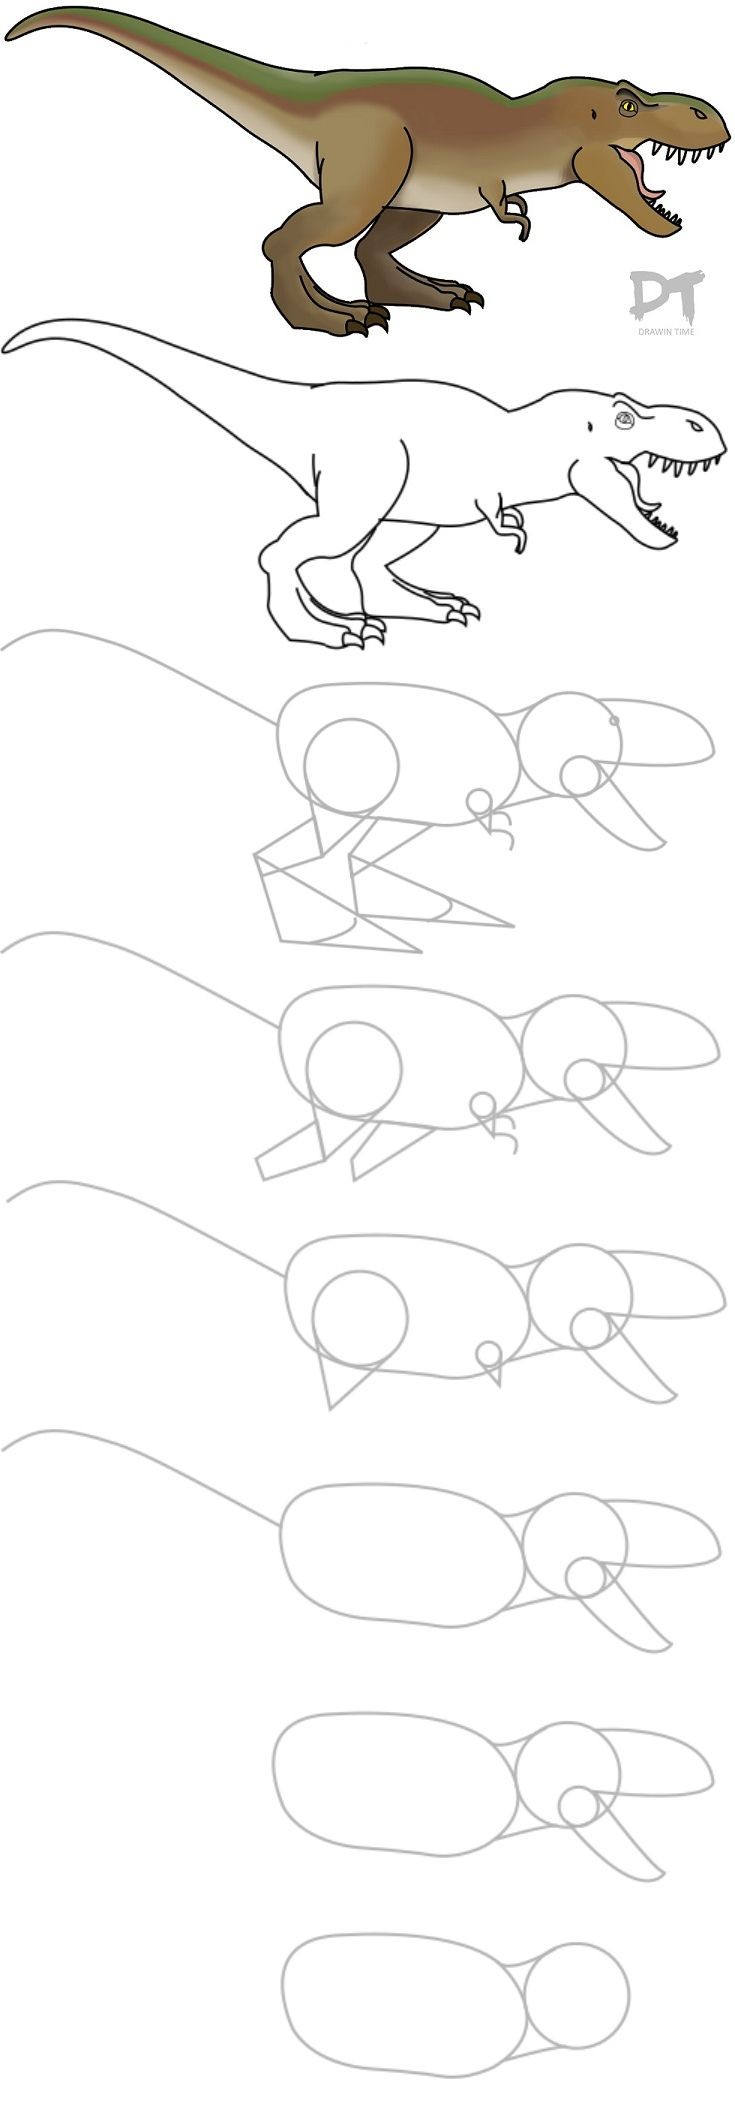 Tutorial: How To Draw A Trex Super Easy And Fun! Http: